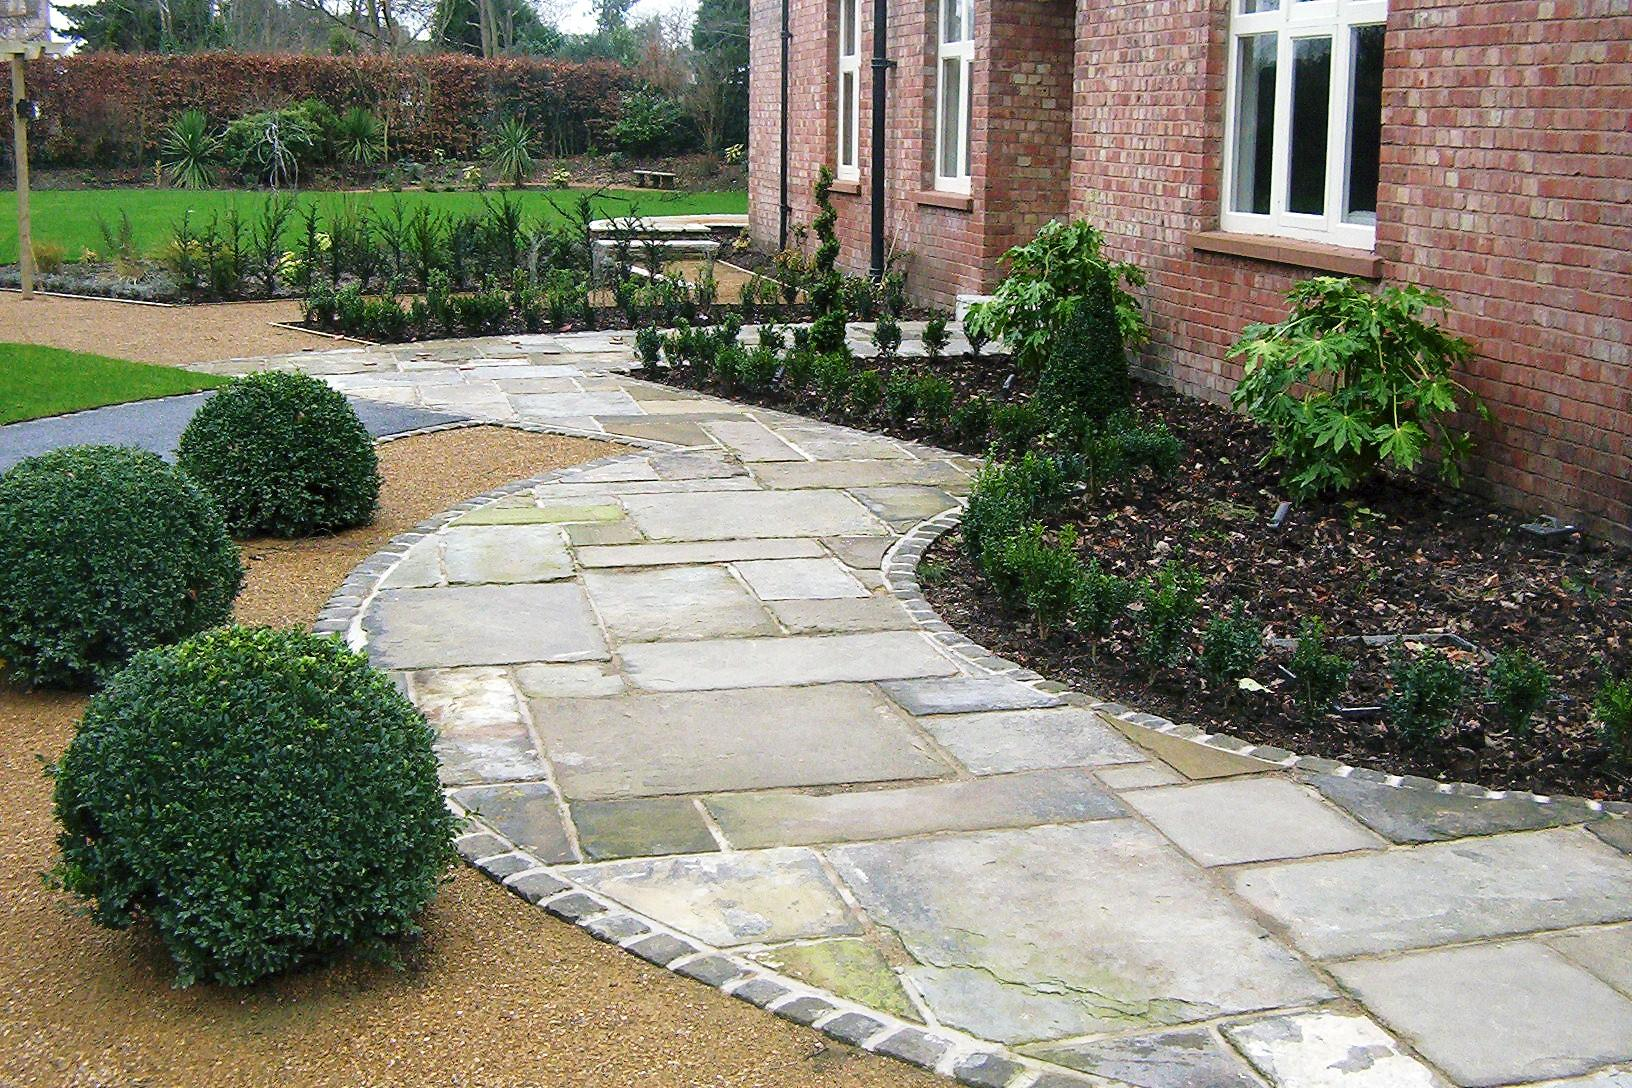 How to Choose A Stone Brick Or Paver Garden Path for Your House